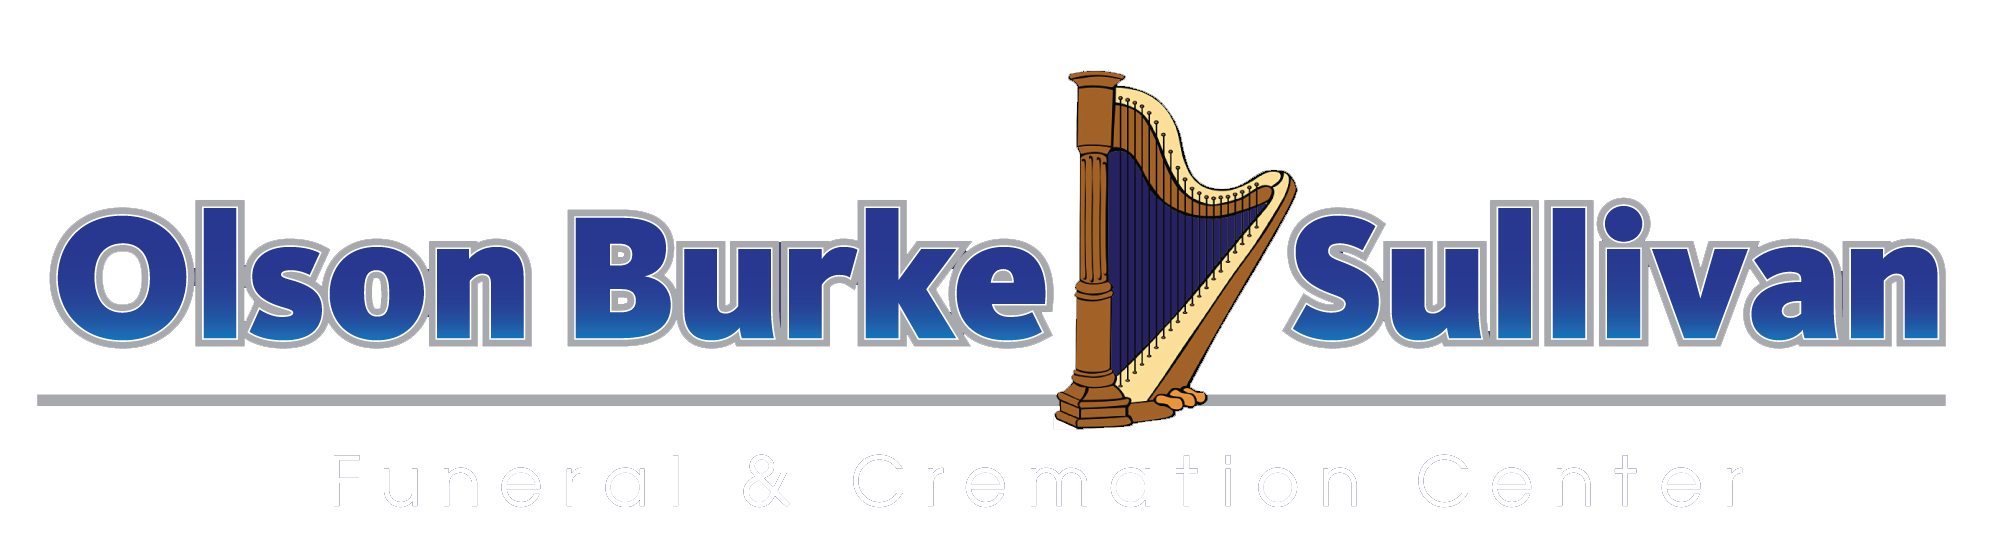 Olson Burke/Sullivan Funeral & Cremation Center